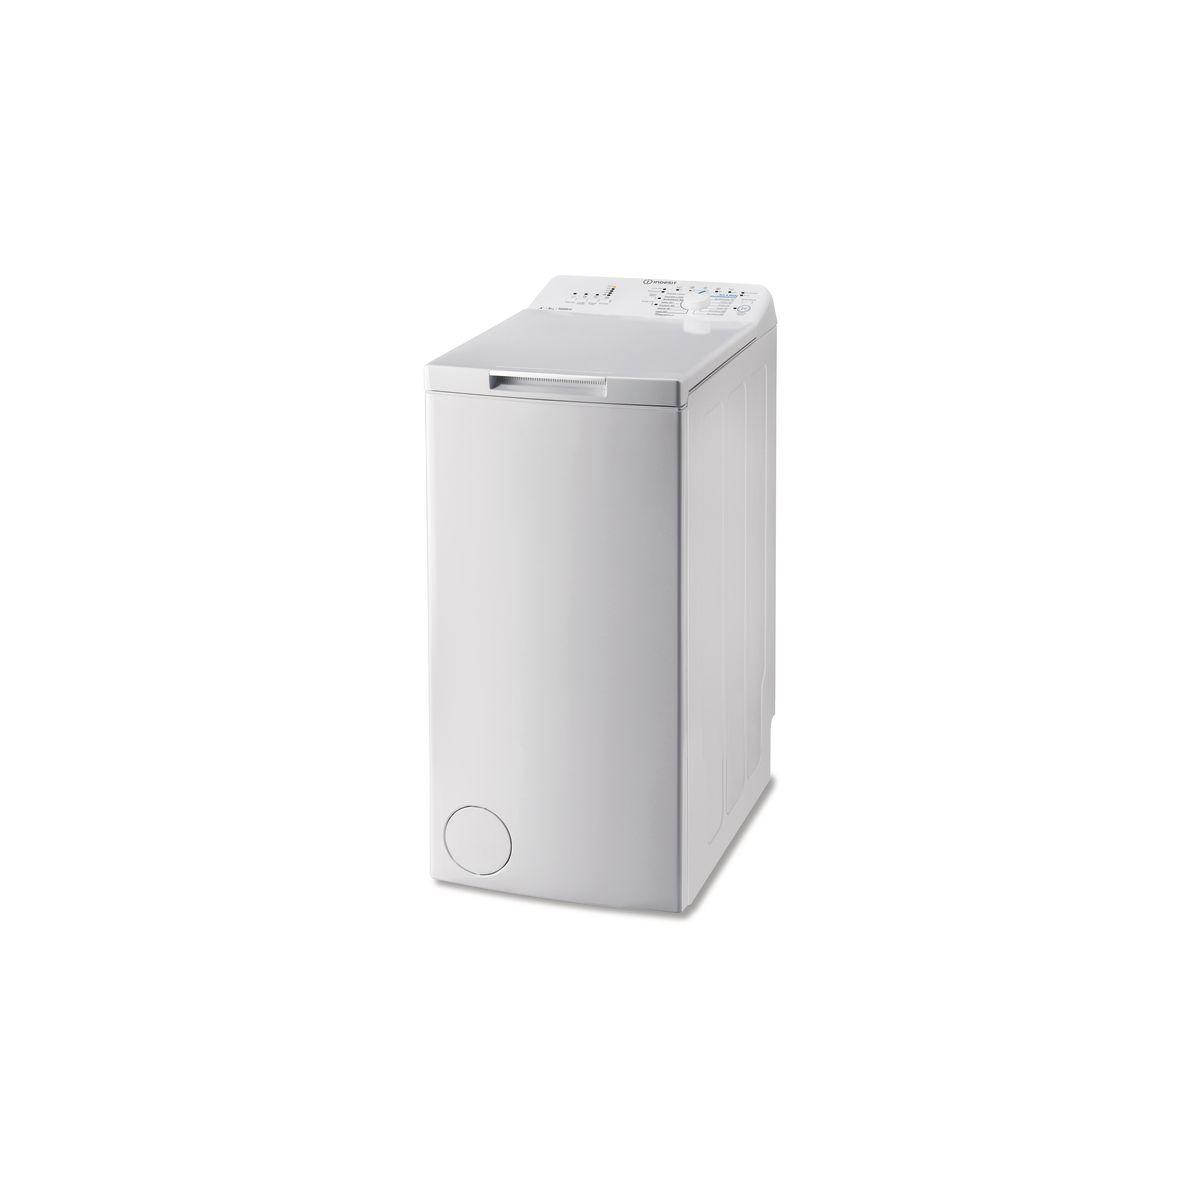 Lave linge top indesit btwca51052(fr) - 10% de remise imm�diate avec le code : gam10 (photo)